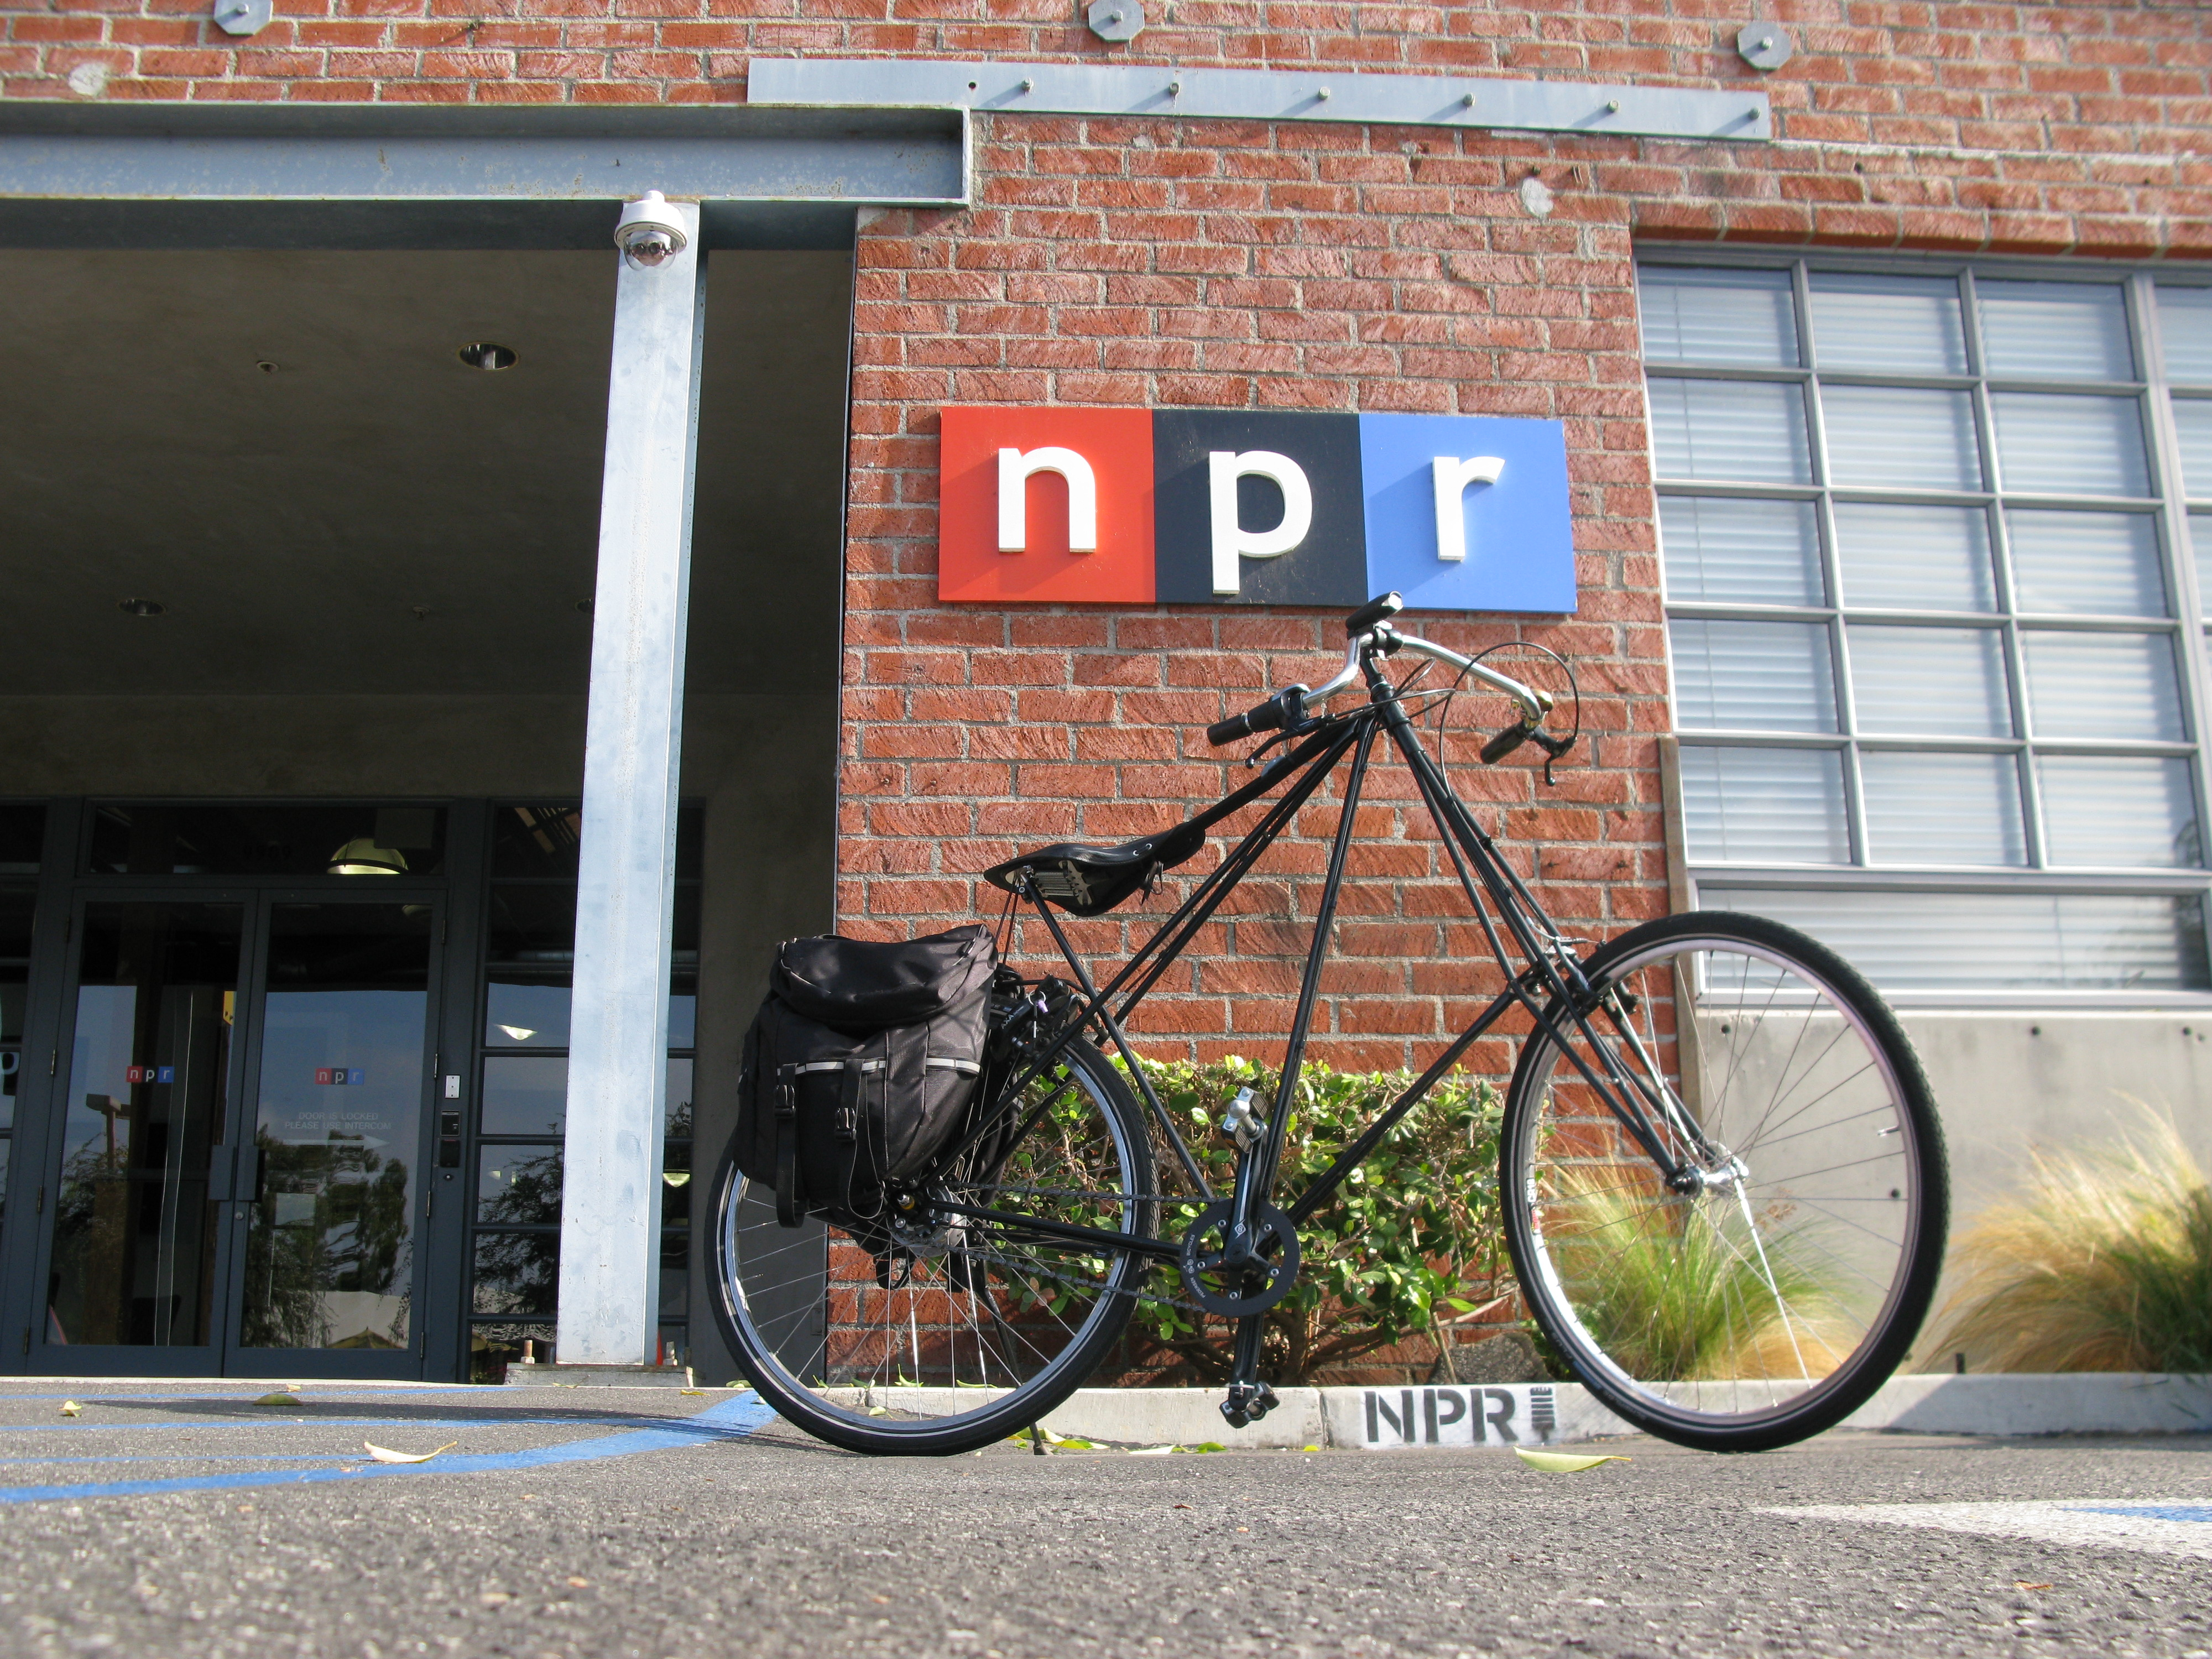 After lugging his Pedersen bike on the Los Angeles metro, NPR Broadcast and Recording Technician Patrick Murray, rides about one-and-a-half miles to reach NPR West in Culver City, Calif. Pedersen bikes allow their riders to sit up straighter than regular road bikes, and their hammock saddles reduce shock on bumpy roads.